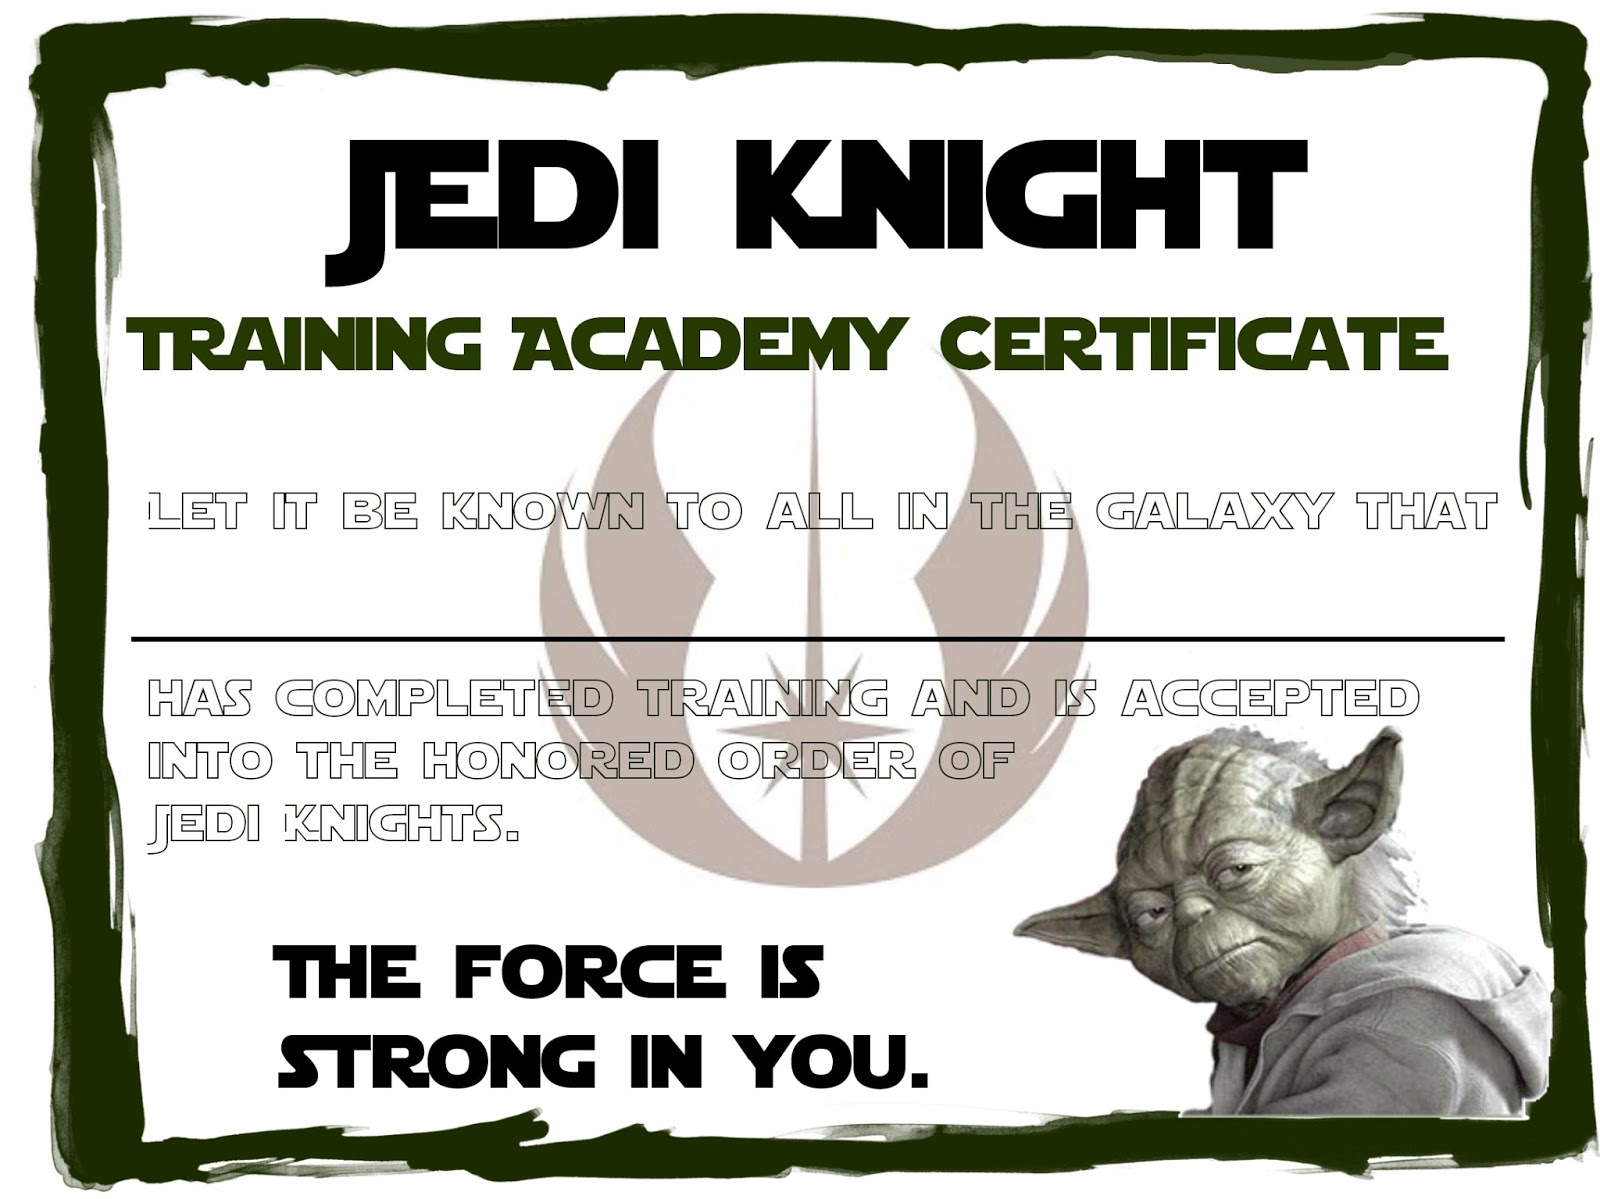 Jedi academy certificate template images certificate design and free training completion certificate template formats for cover jedi training academy certificate template choice image jedi2bcertificate alramifo Images